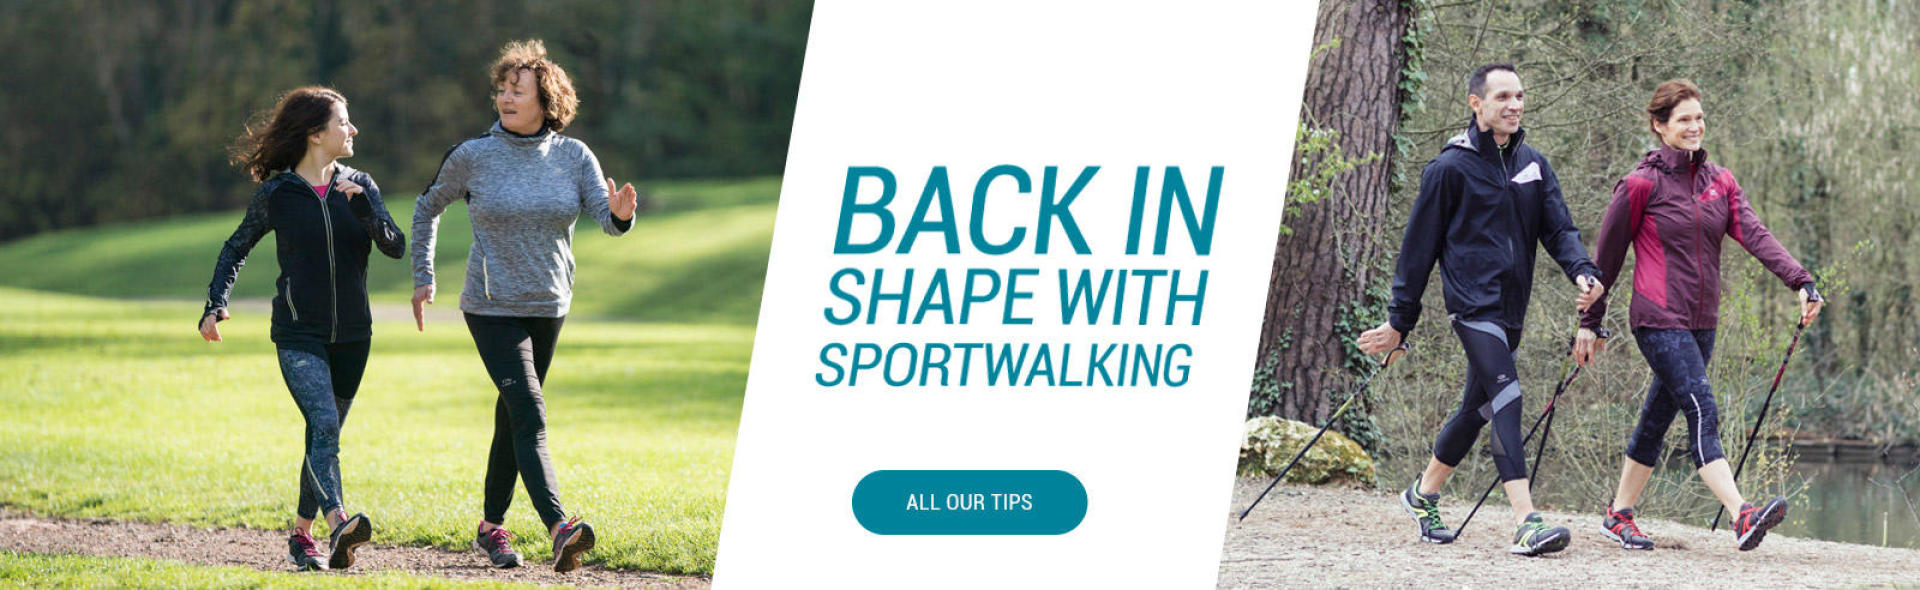 Back in shape with sportwalking